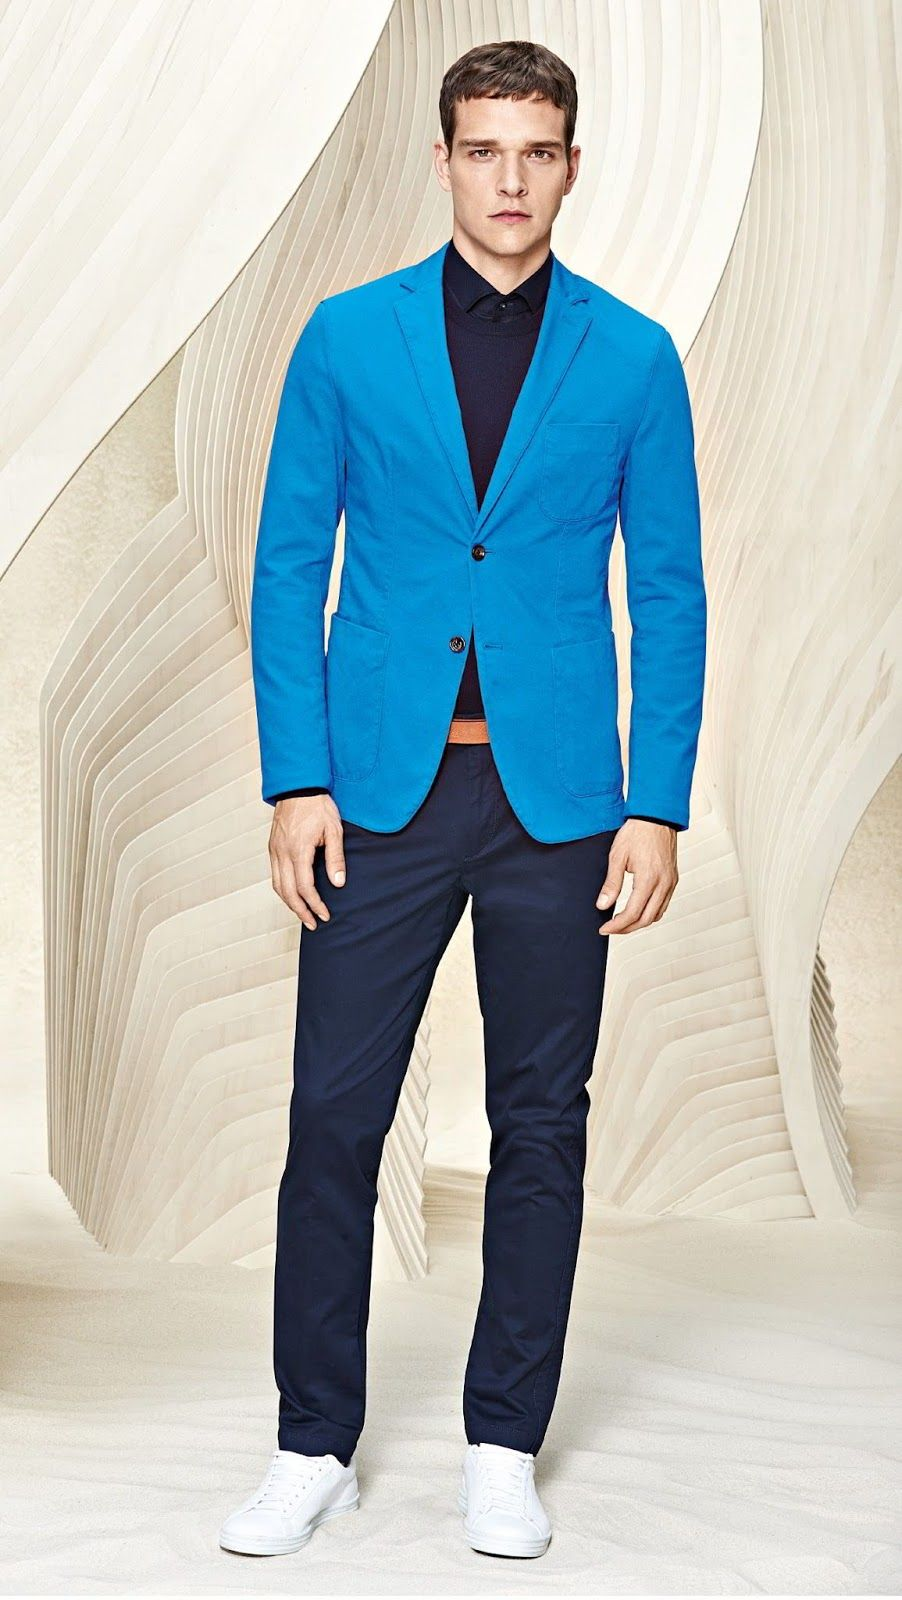 fb5c13da0b Hugo Boss Resort 2016 Collection -  Menswear  Trends  Tendencias  Moda  Hombre